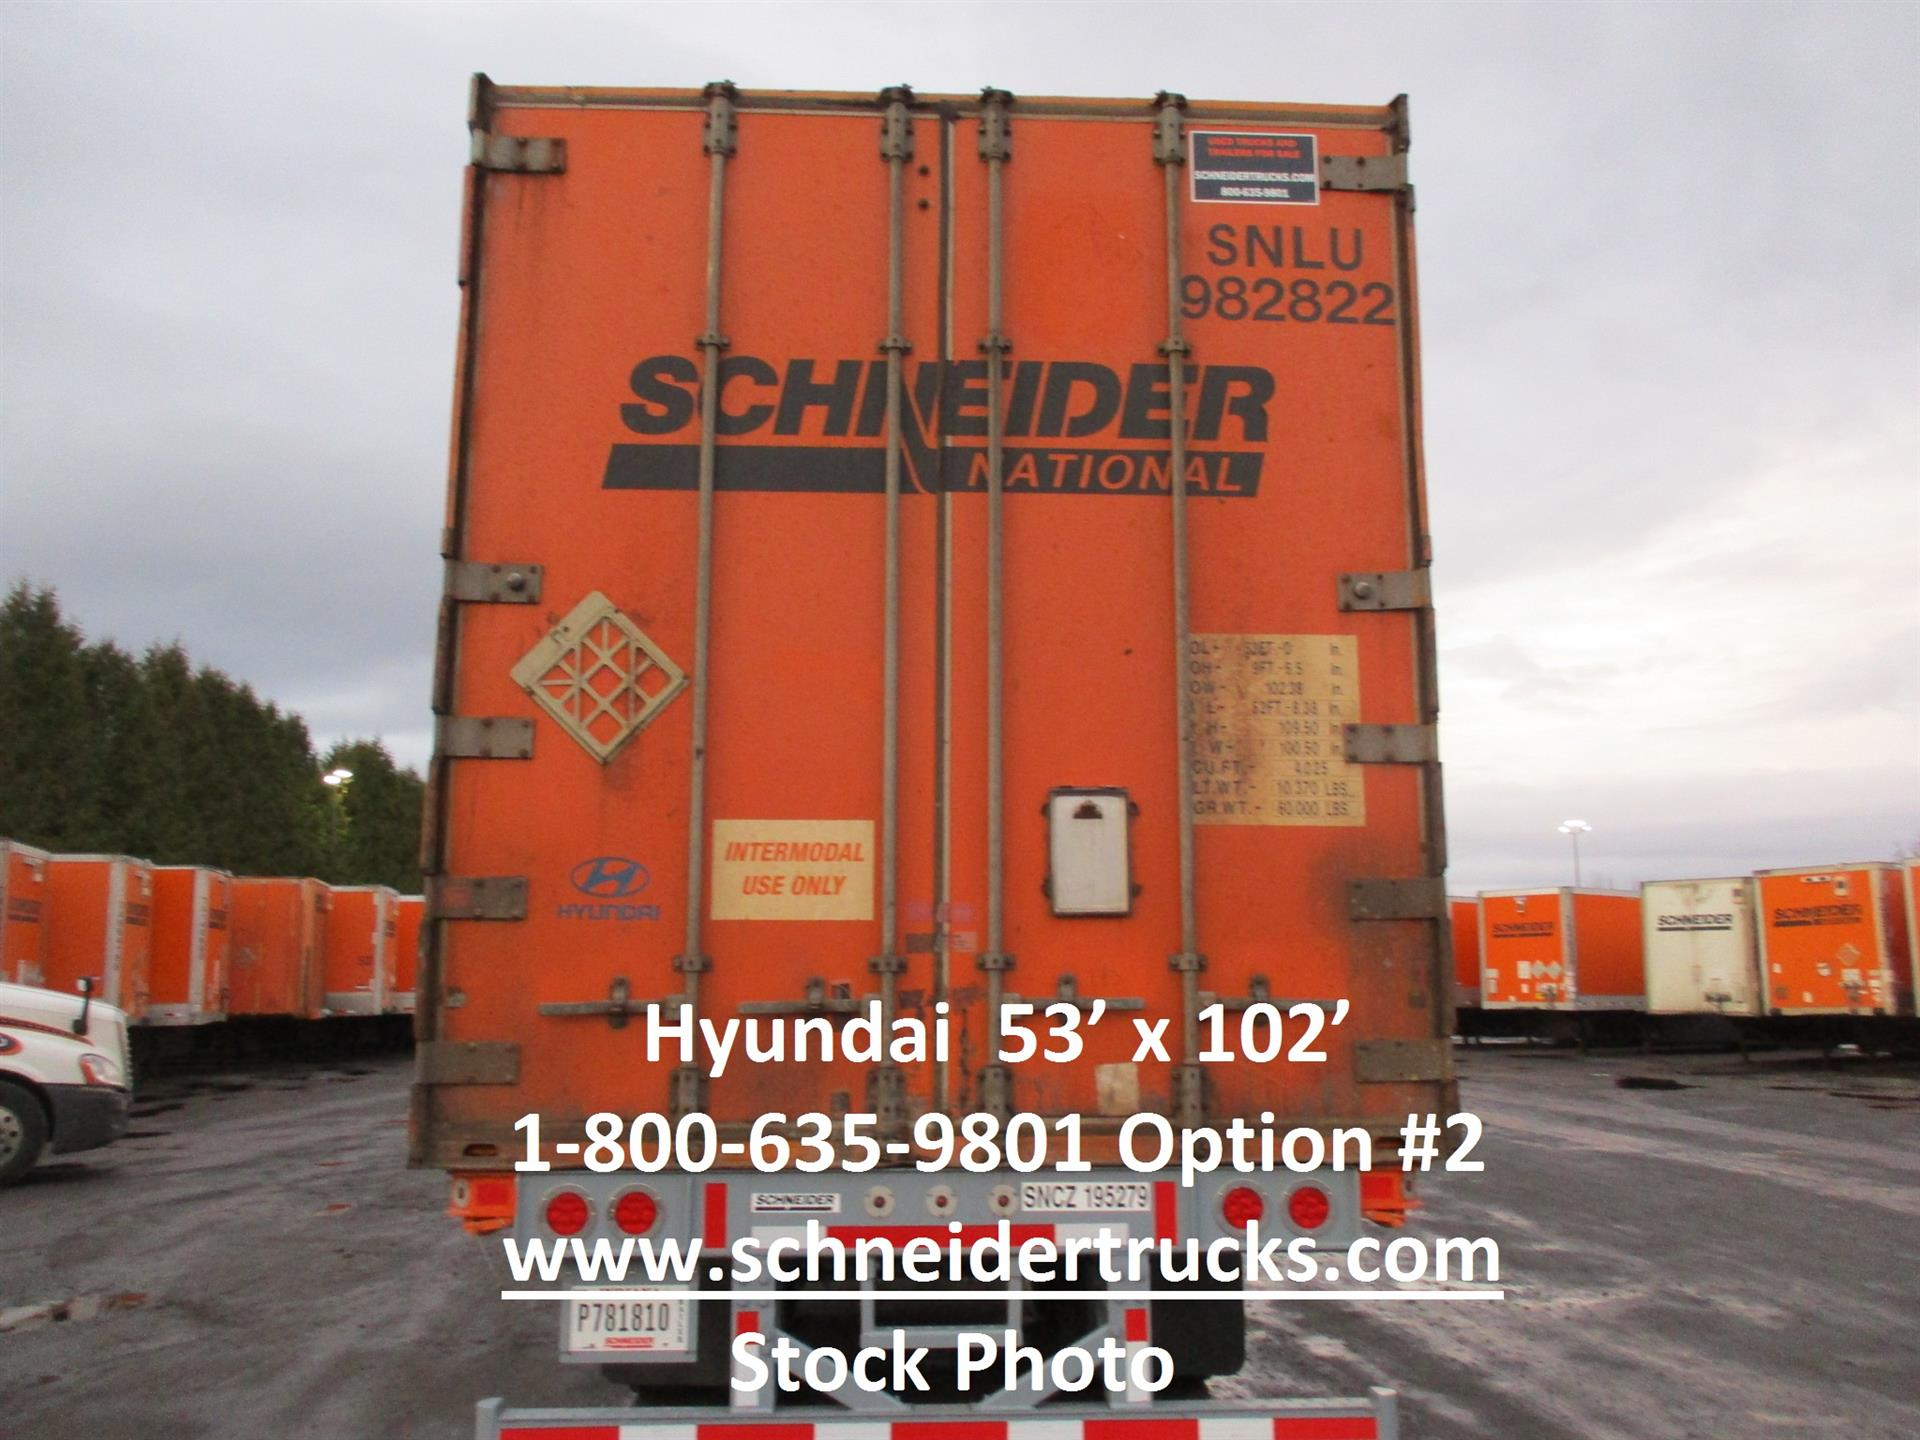 2006 Hyundai Container for sale-59289349